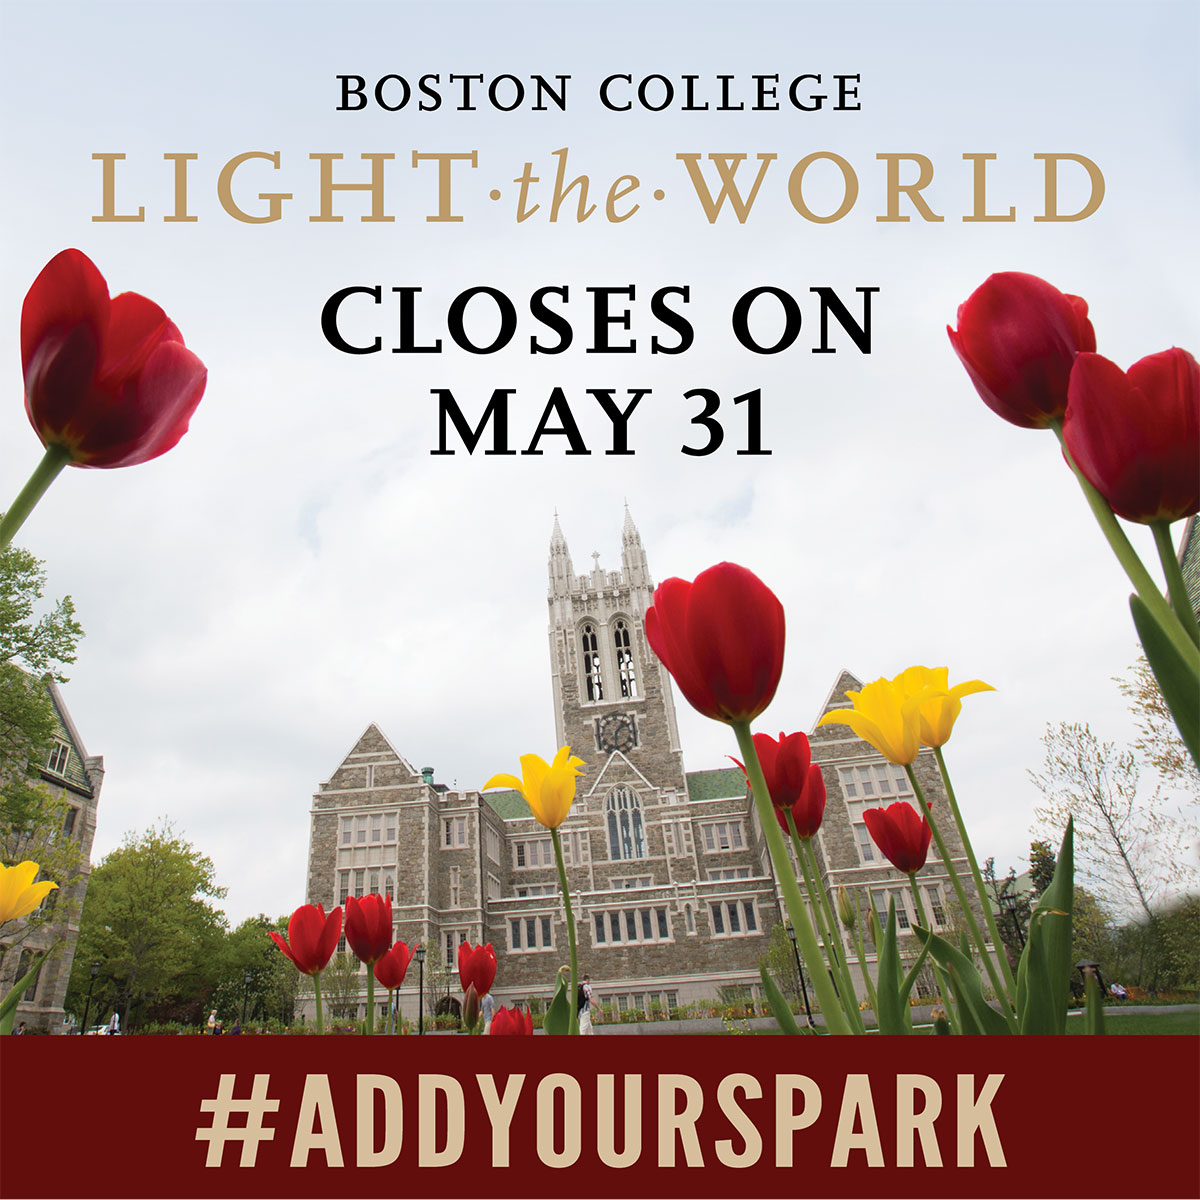 Light the World Closes on May 31